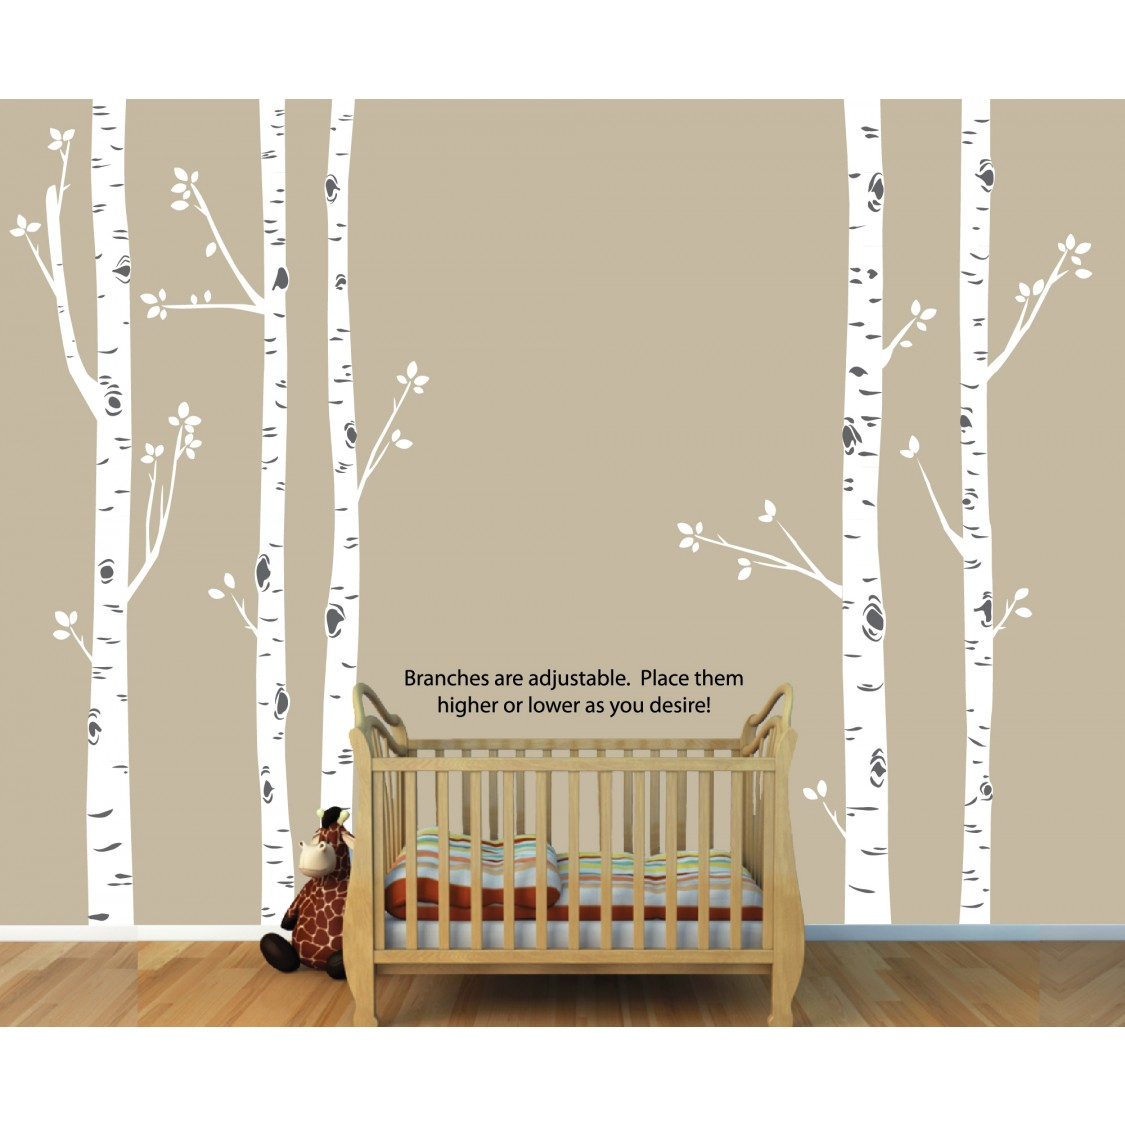 High Quality Nursery Decals And More